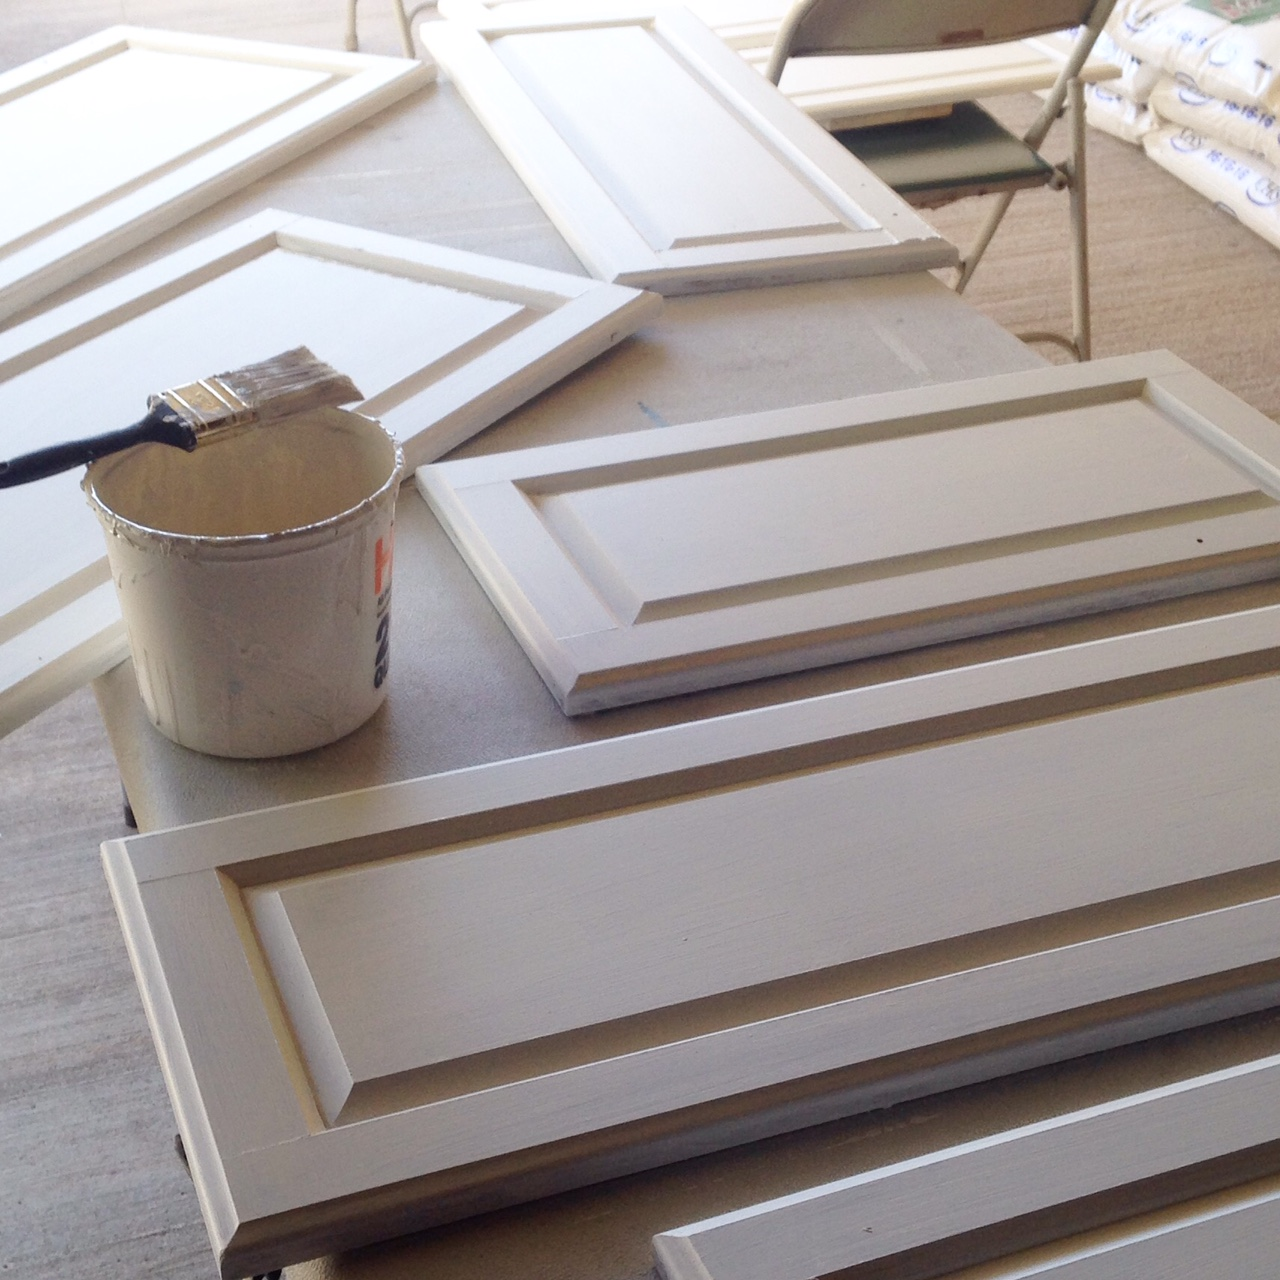 Painting cabinet doors (Behr Swiss Coffee)